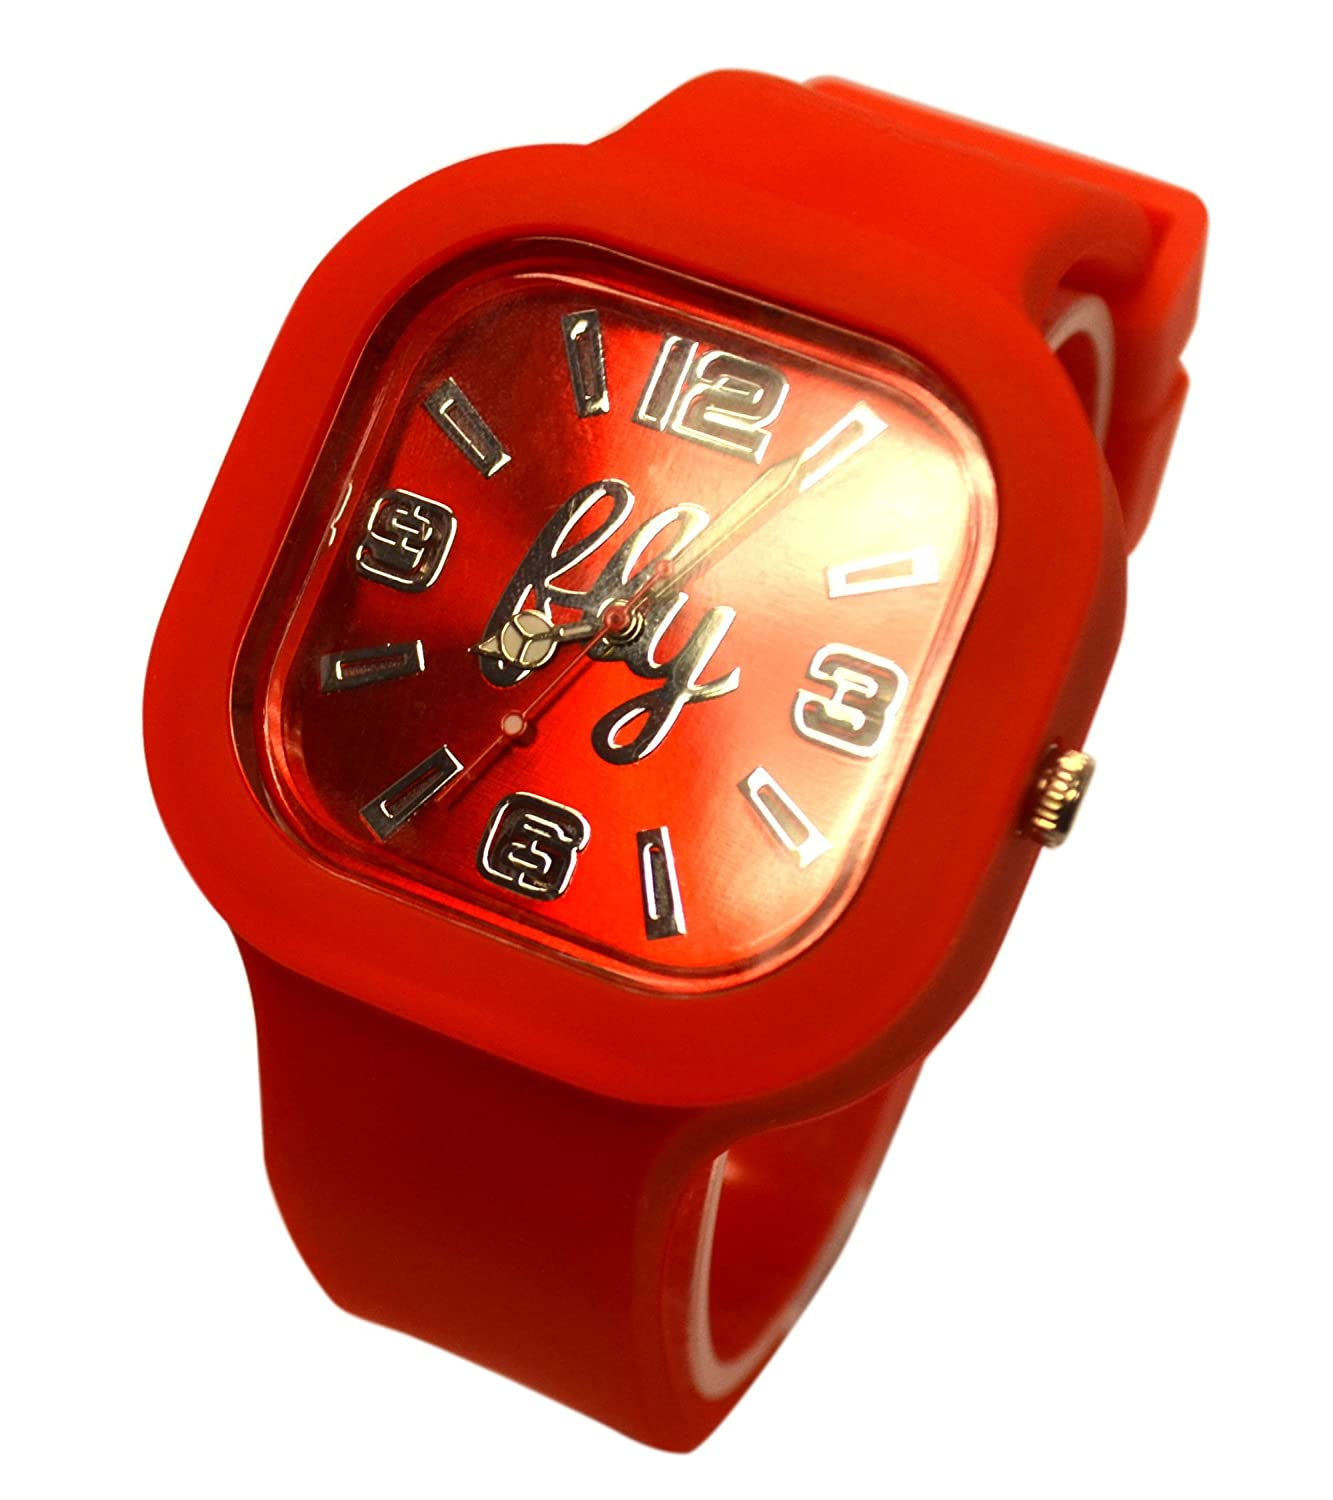 Amazon.com: Fly Watches Radiant Red 2.0 Japanese Movement Silver Dial Unisex Adult Watch: Fly Watches: Watches